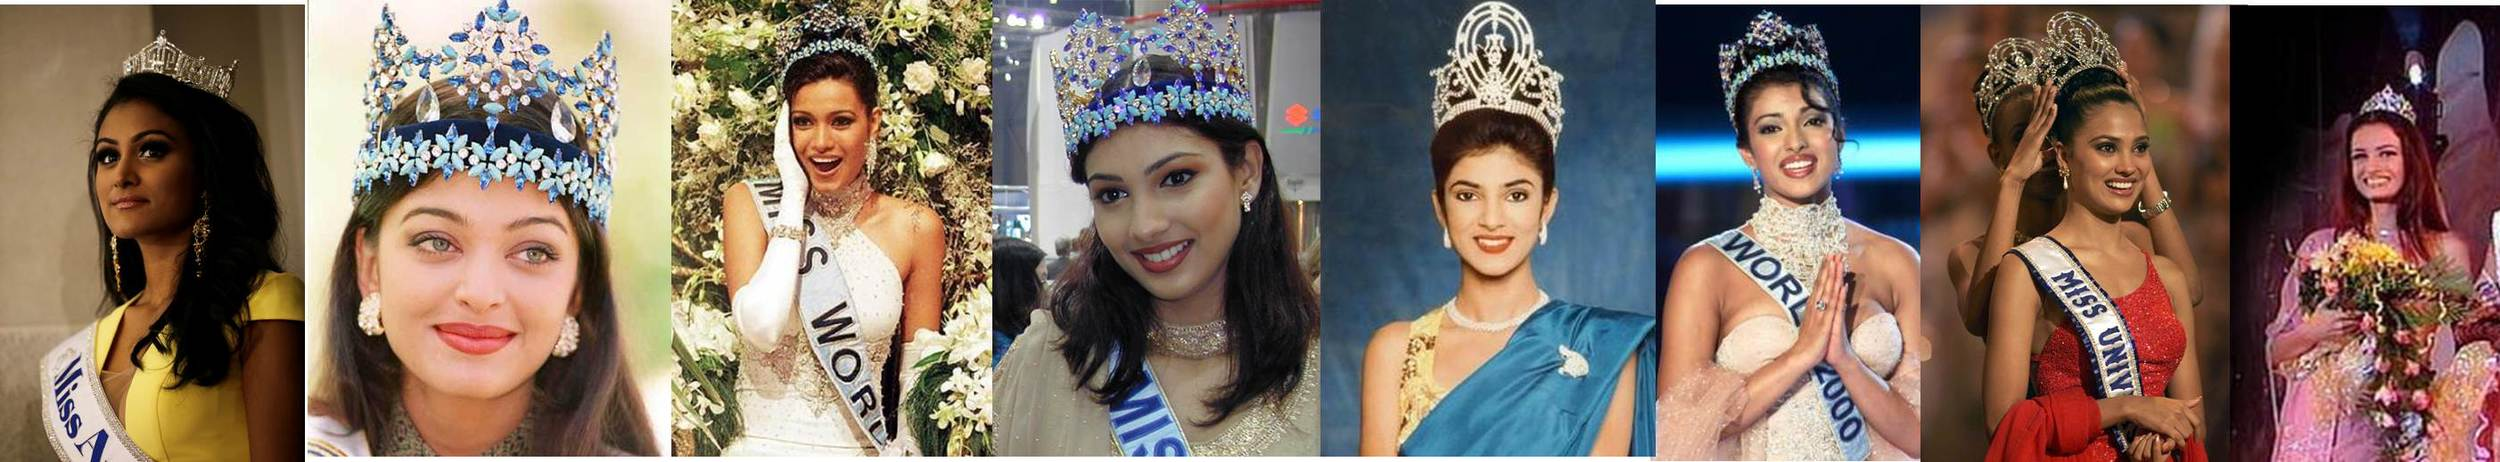 Nina vs. past Miss World and Miss Universe pageant winners (Click to Enlarge)